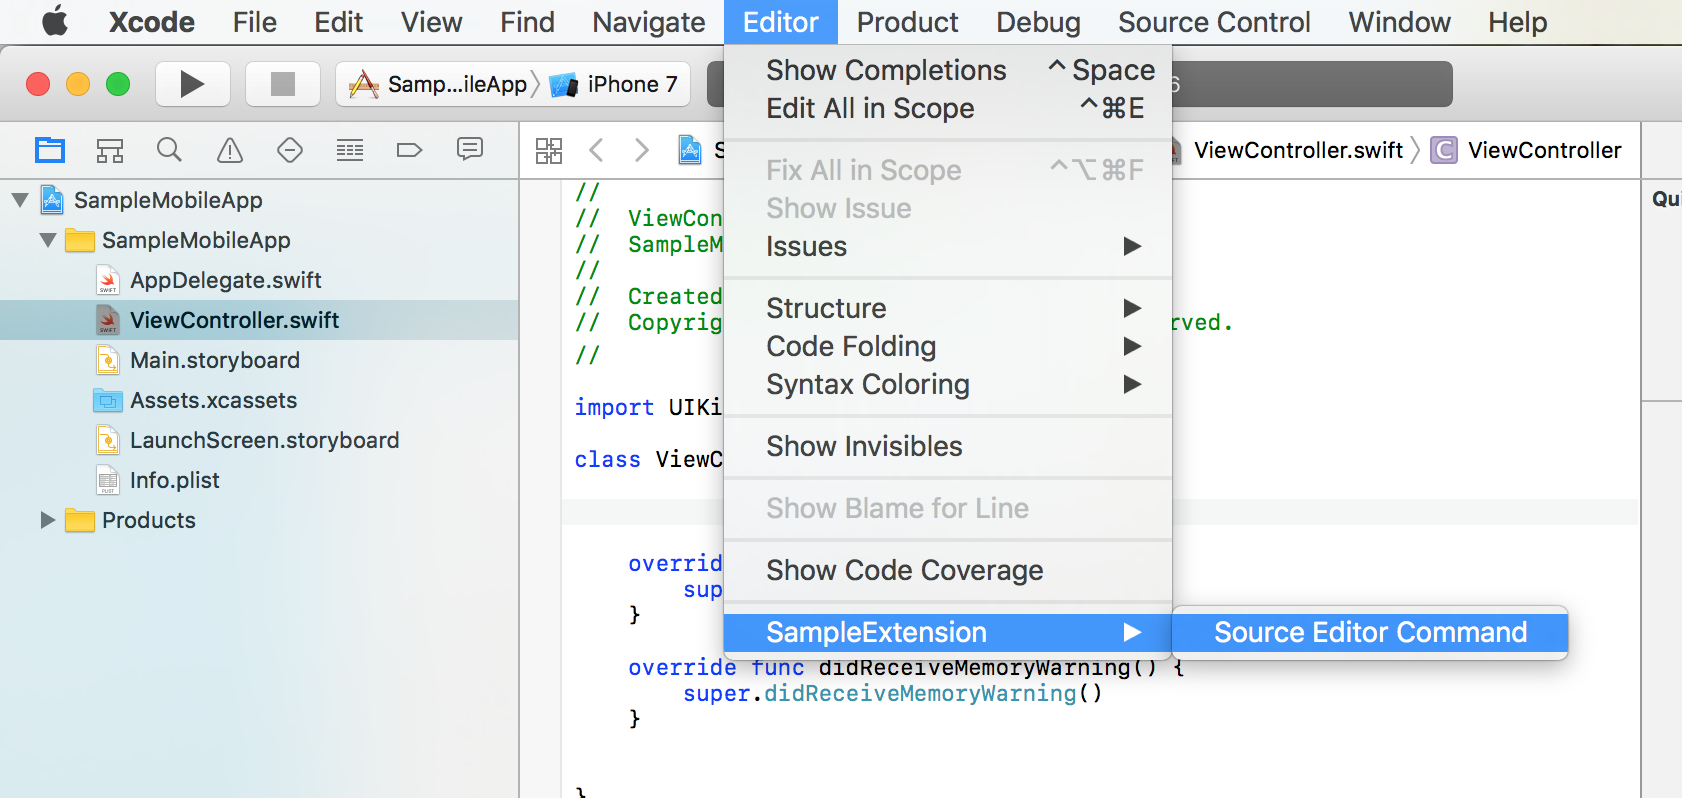 xcode-source-editor-ext-debug-03